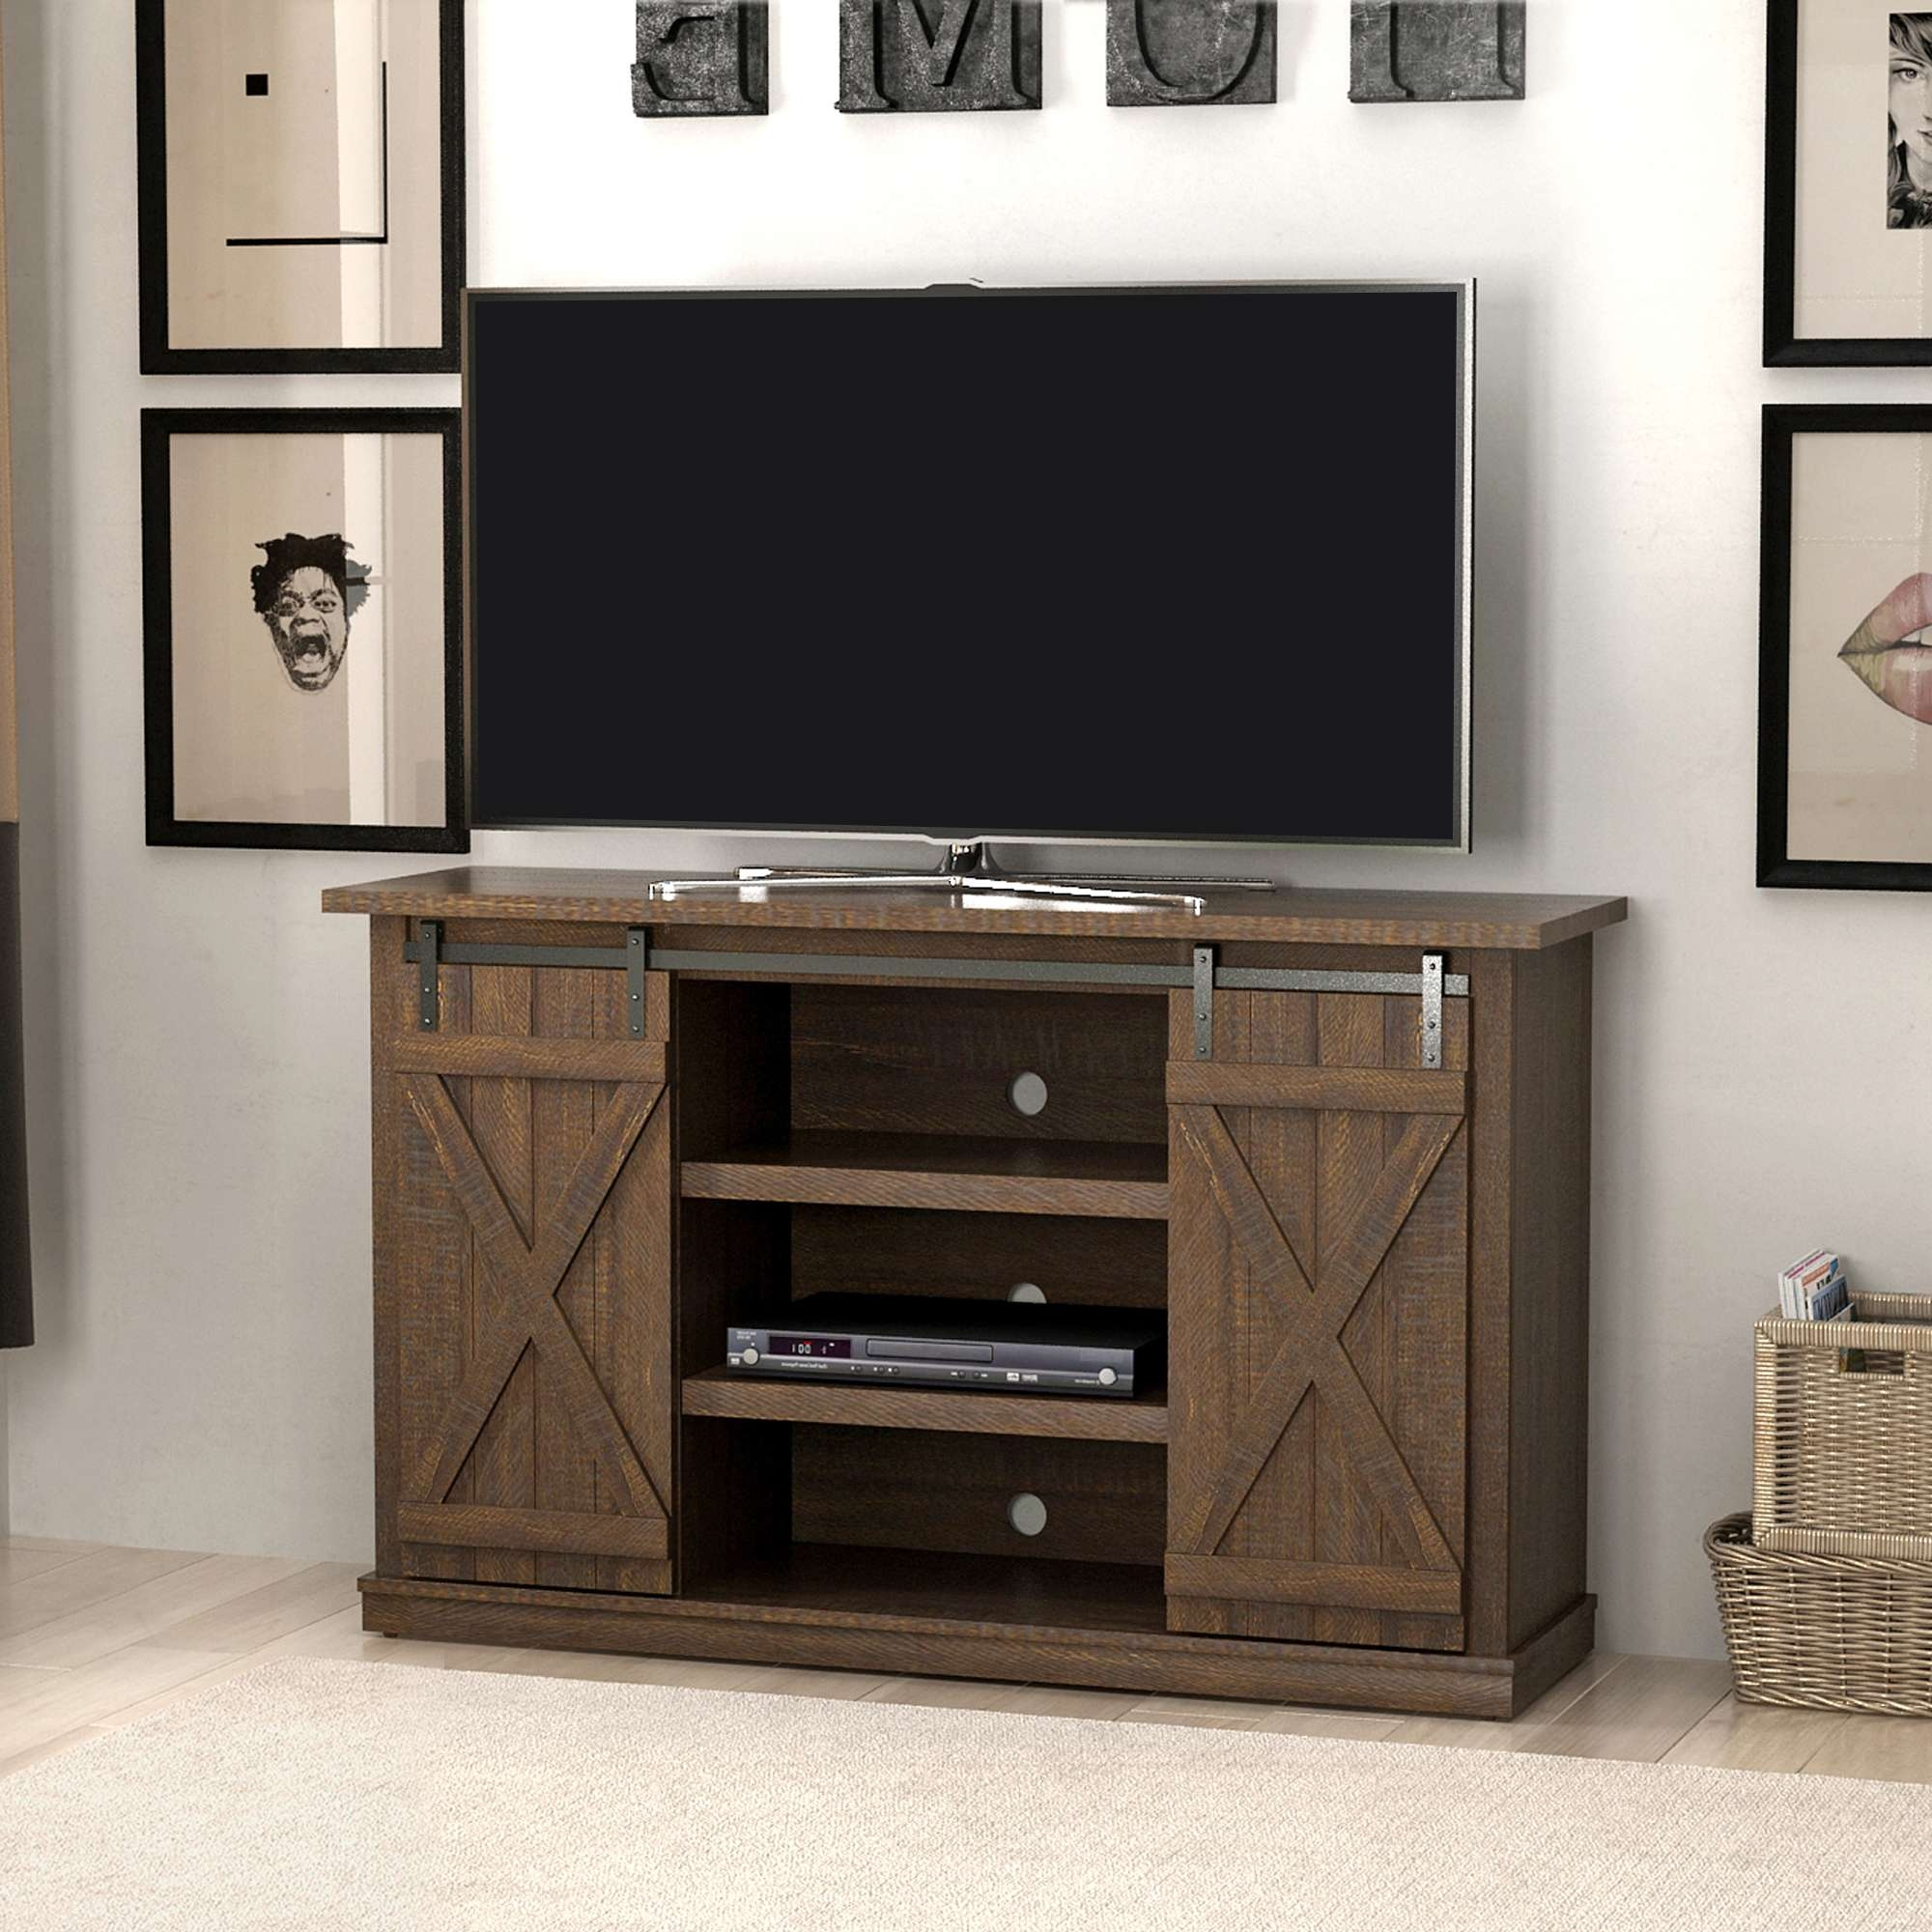 Tv : Gold Tv Stands Awe Inspiring Tv Stands Gold Coast' Wondrous Pertaining To Gold Tv Stands (View 16 of 20)